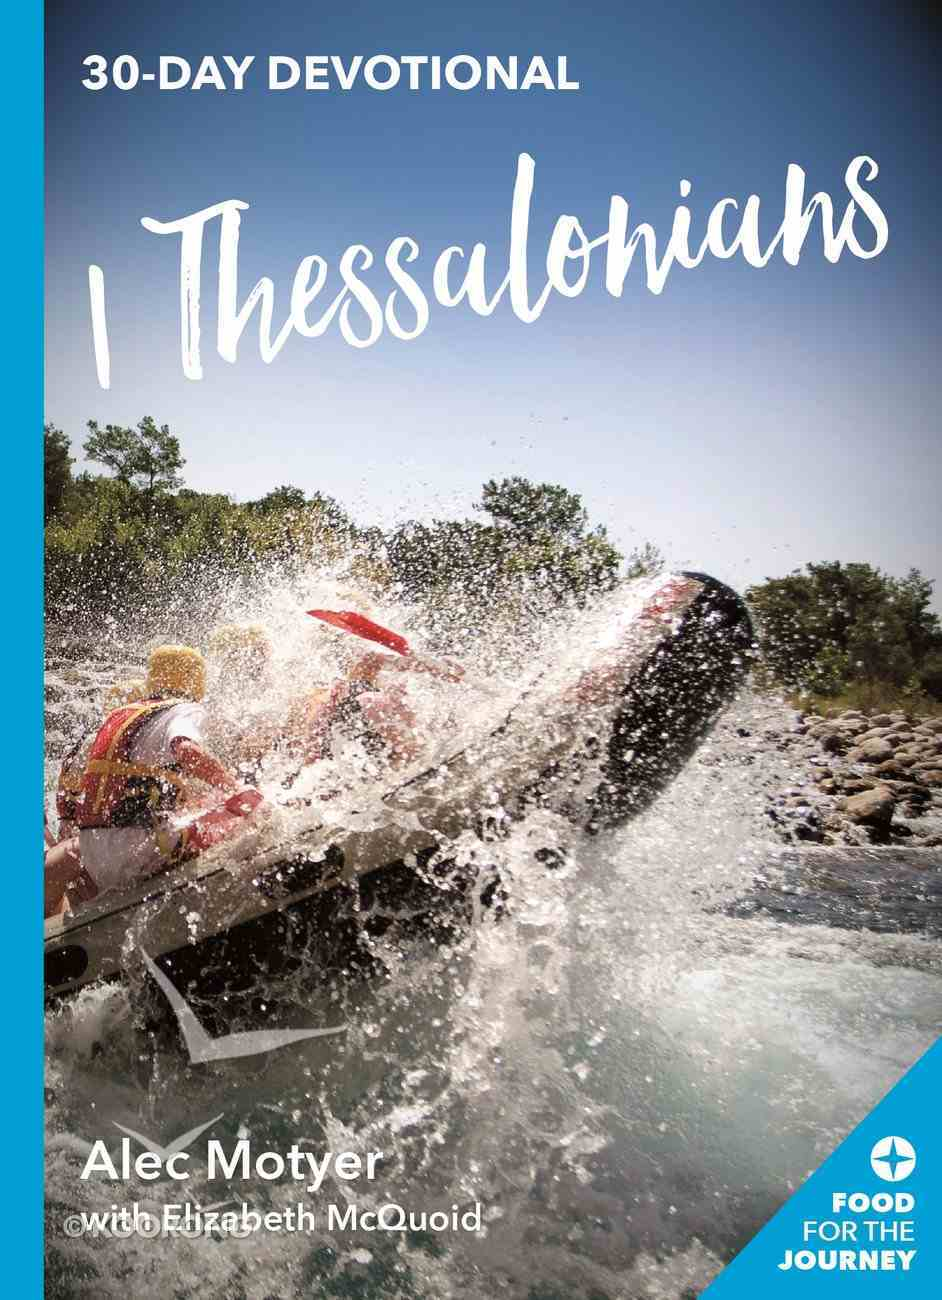 1 Thessalonians (Food For The Journey Series) Paperback